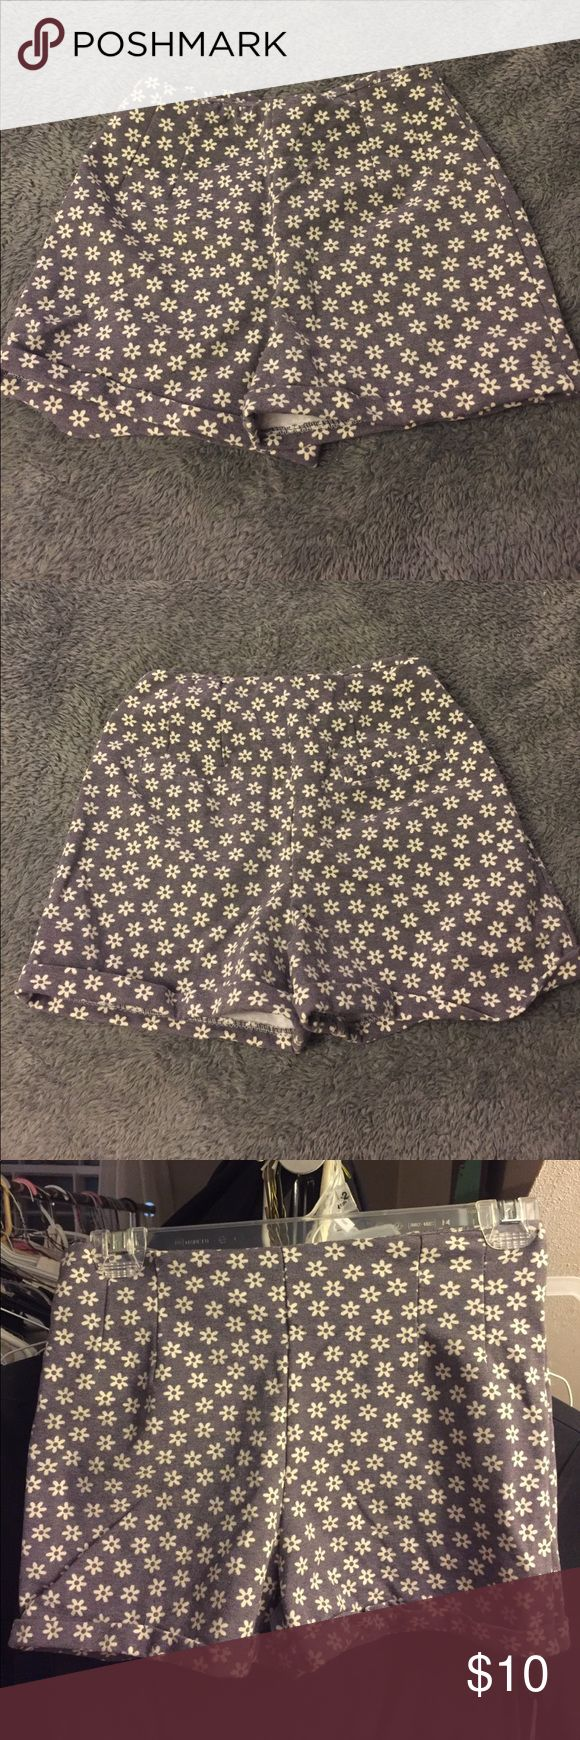 Brandy Melville Floral Shorts Comfortable Stretchy Material, never worn, new with tags , never fit Brandy Melville Shorts